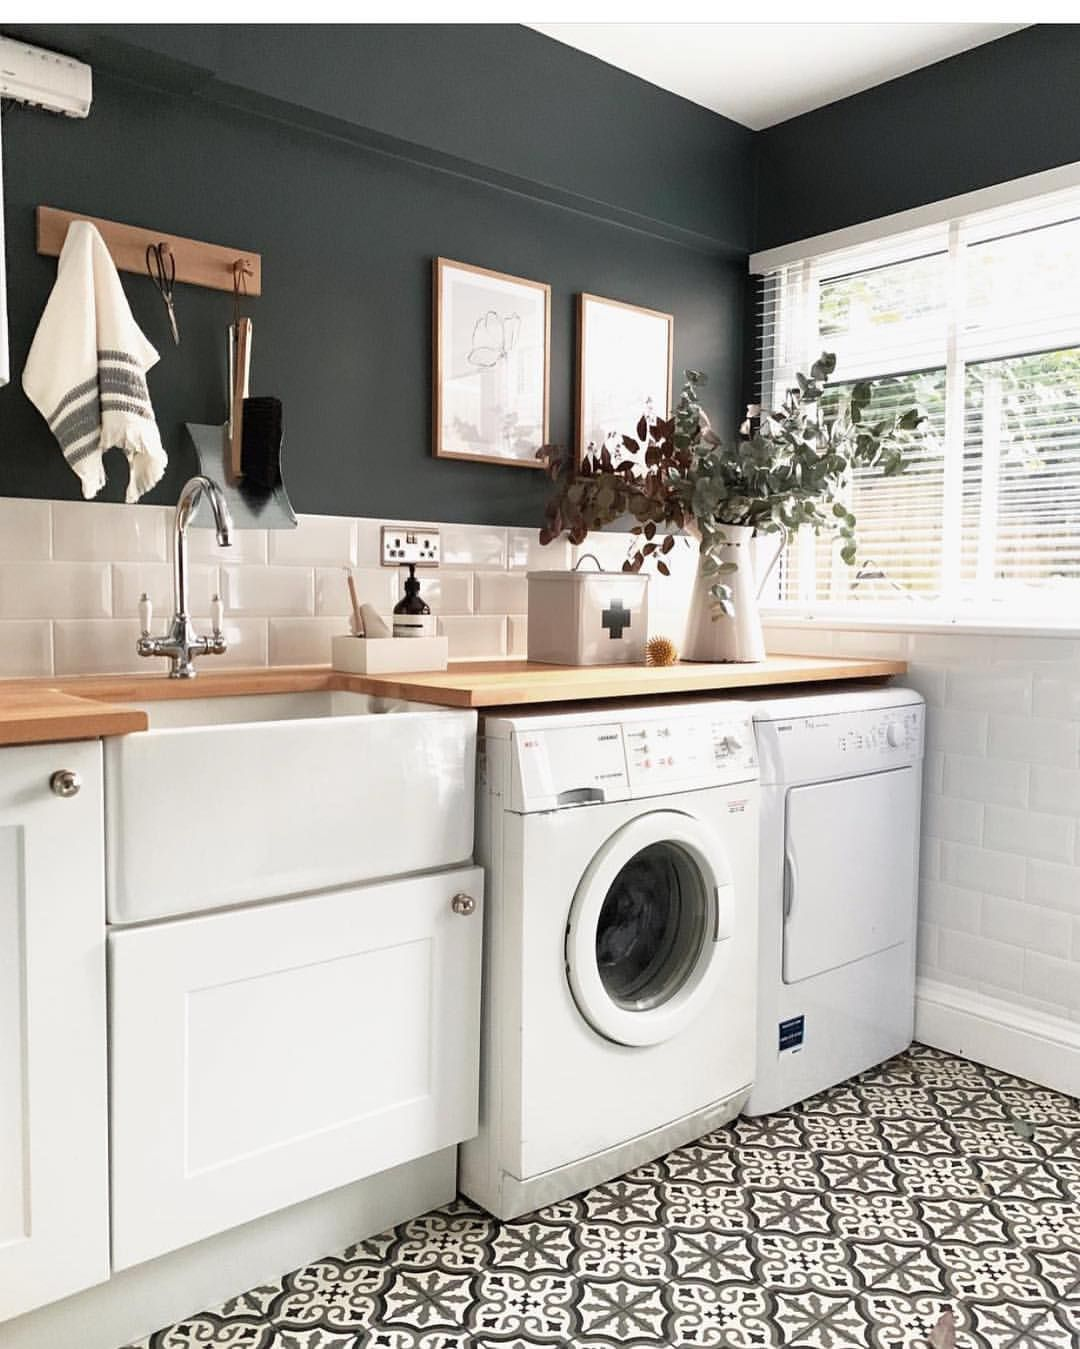 I Few People Have Asked Me For Some Utility Room Inspiration Recently So Here Are My Top 10 Swip Modern Laundry Rooms Laundry Room Design Elegant Laundry Room